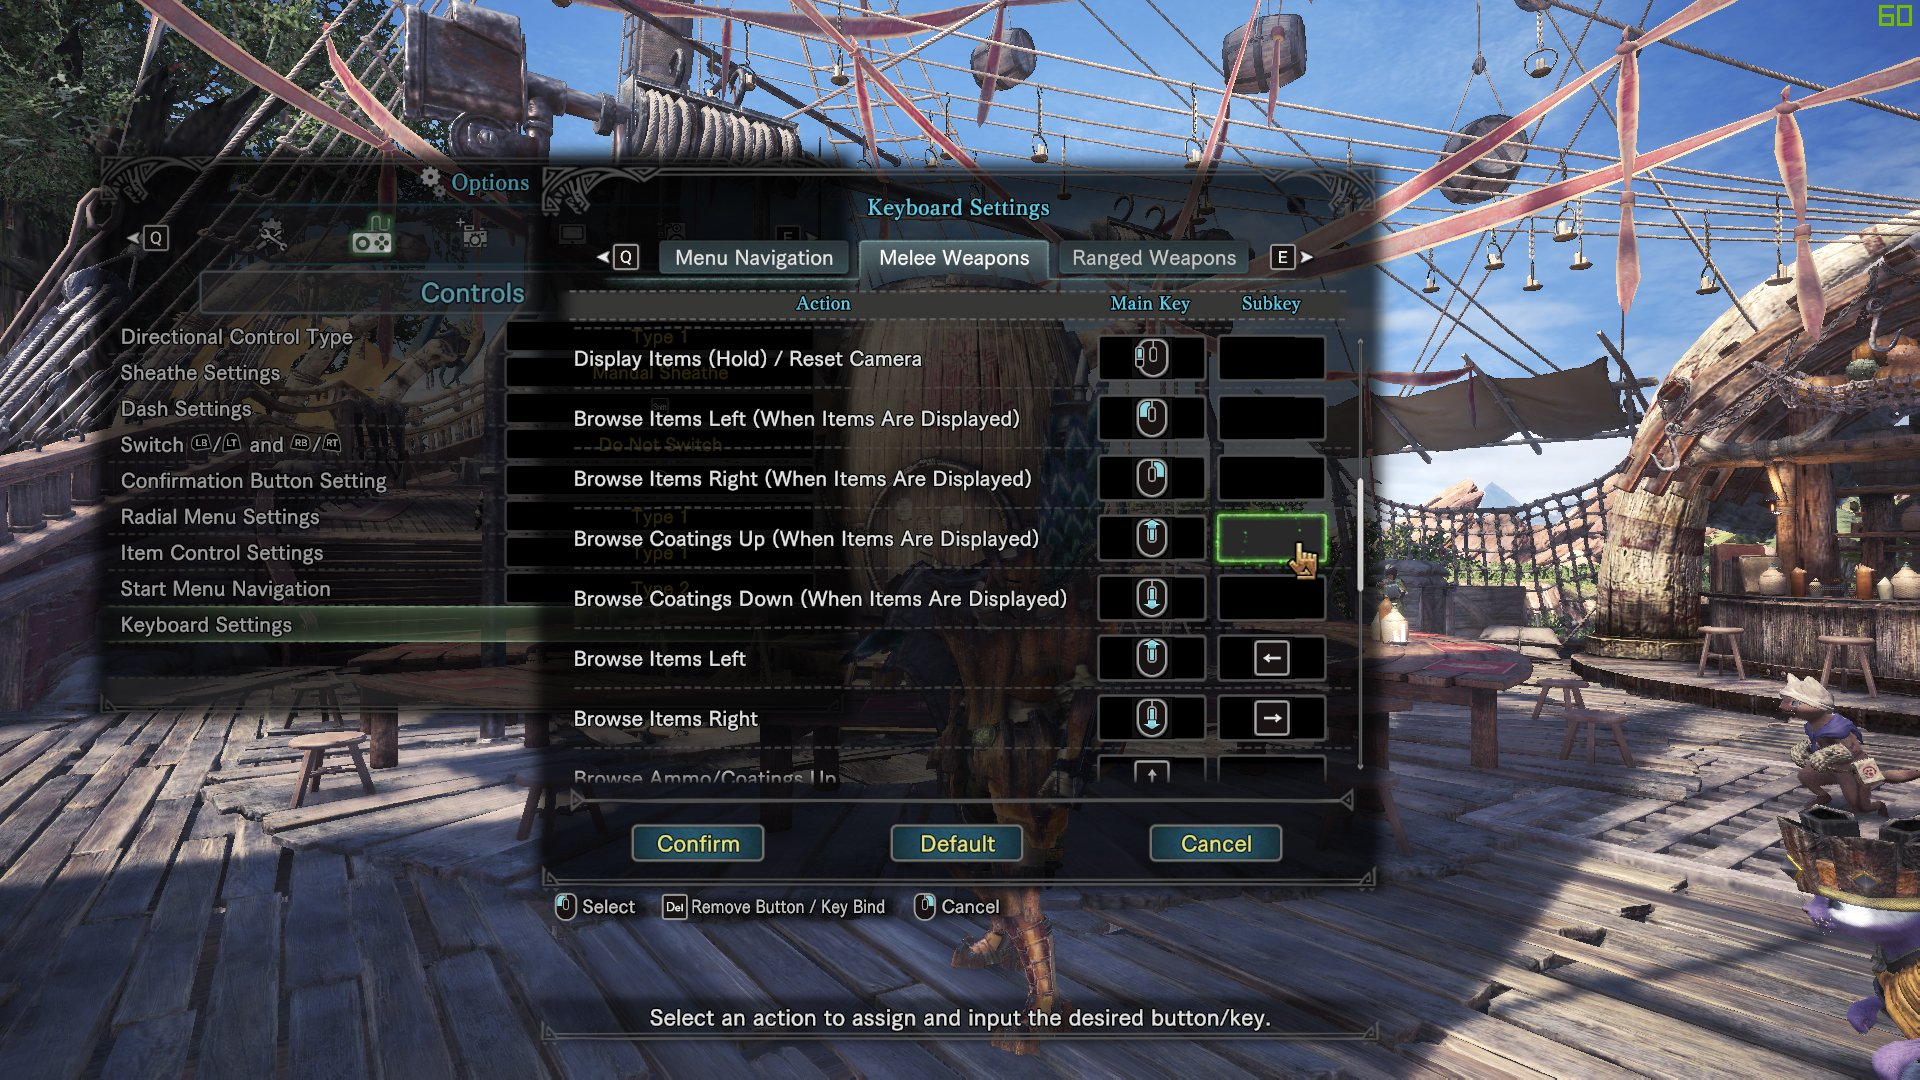 Here's how to make Monster Hunter: World's PC controls better